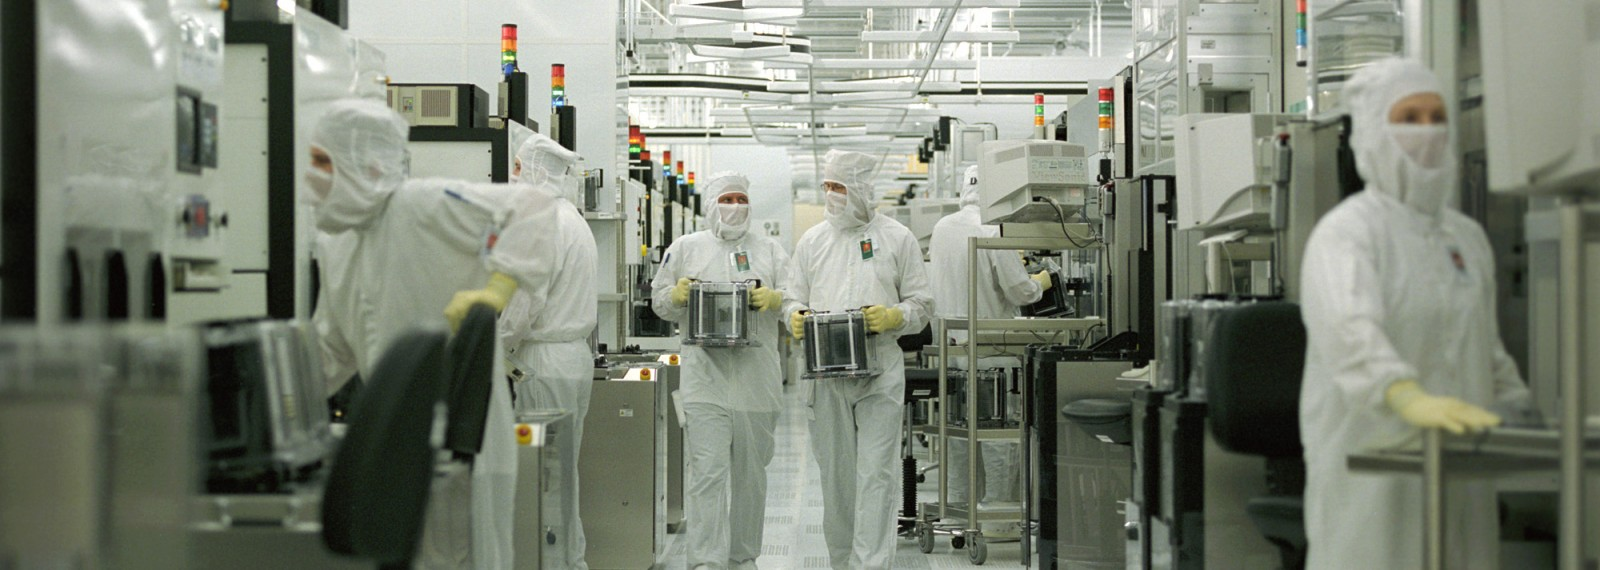 030/AMD, DEU, Dresden, 0601.2003, Fab 30 Cleanroom, process control during wafer production of AMD Athlonª XP processors (more than 2 GHz, 130nm process, copper technology), AMD Saxony LLC & Co. KG includes both the semiconductor facility Fab 30 and the Dresden Design Center (AMD«s European Product Development Center), Fab 30 is one of the most advanced semiconductor plants in the world, AMD is a global supplier of integrated circuits for the personal and networked computer and communications markets with manufacturing facilities in the US, Europe, Japan and Asia -Sven Dšring / VISUM- register: AMD, high-tech, computer, semiconductor, processor, production, manufacturing, chip, chips,, microelectronic, microelectronics, cleanroom, fab, Fab 30, economy, industry, work place, employment, employee, employees, techniqe, techniques, technology, technologies, wafer, copper, nm, nanometer